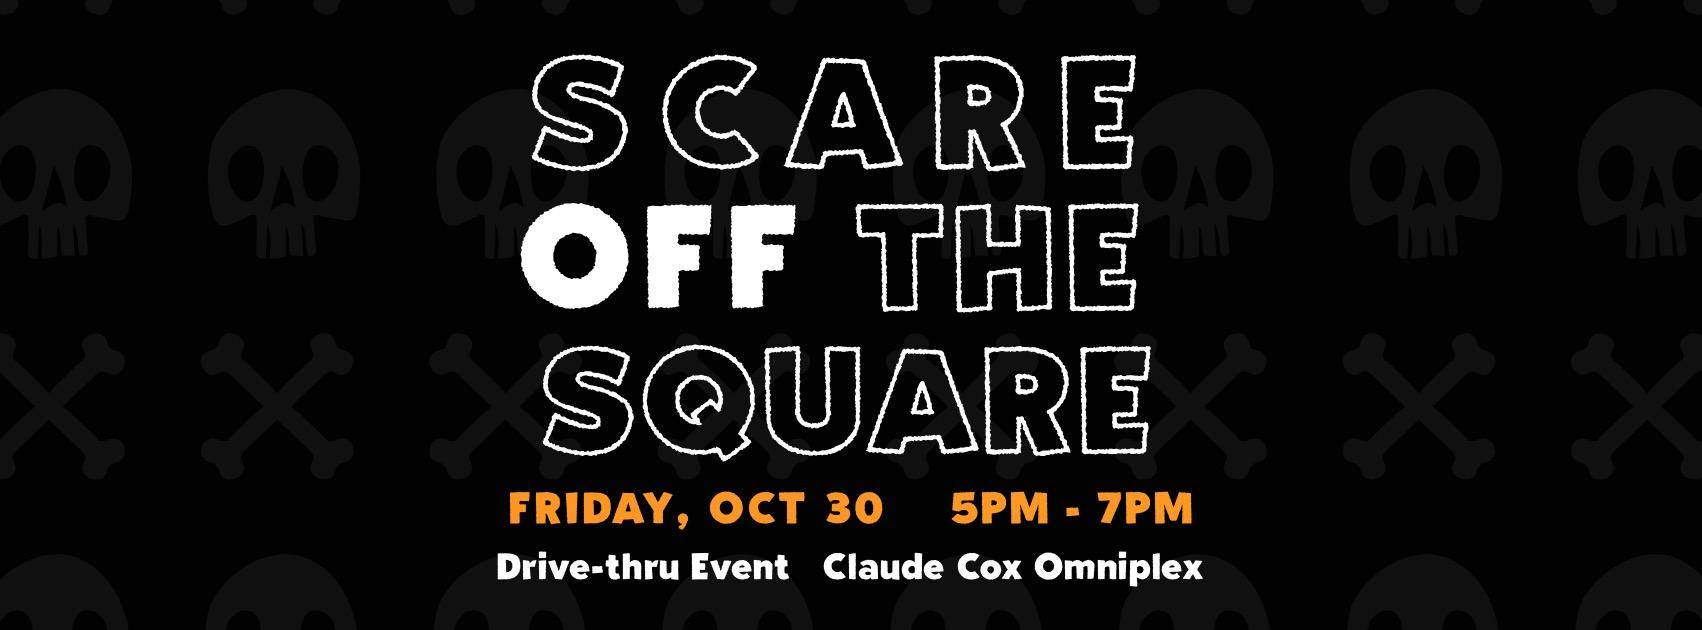 Scare Off The Square (JPEG)